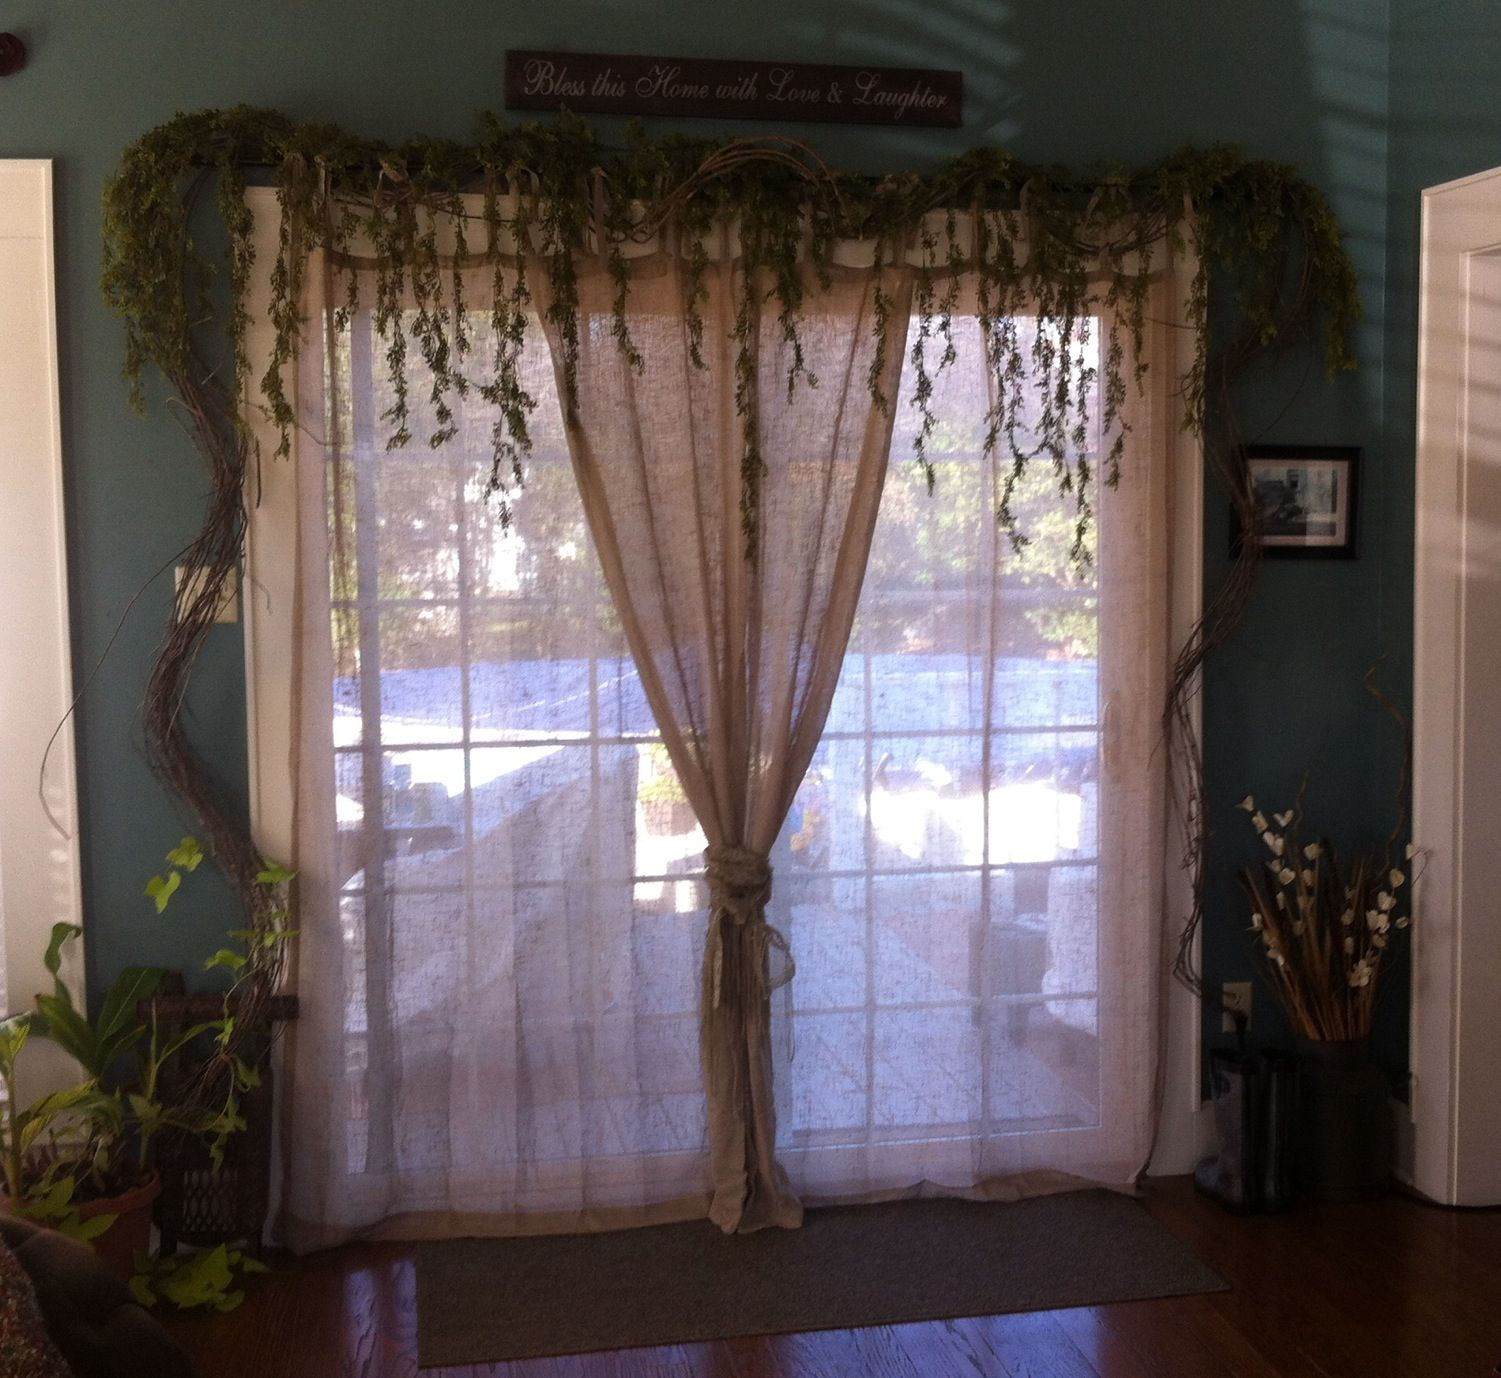 Patio Door Decorating Ideas: How To Decorate That Sliding Patio Door And Keep The Light